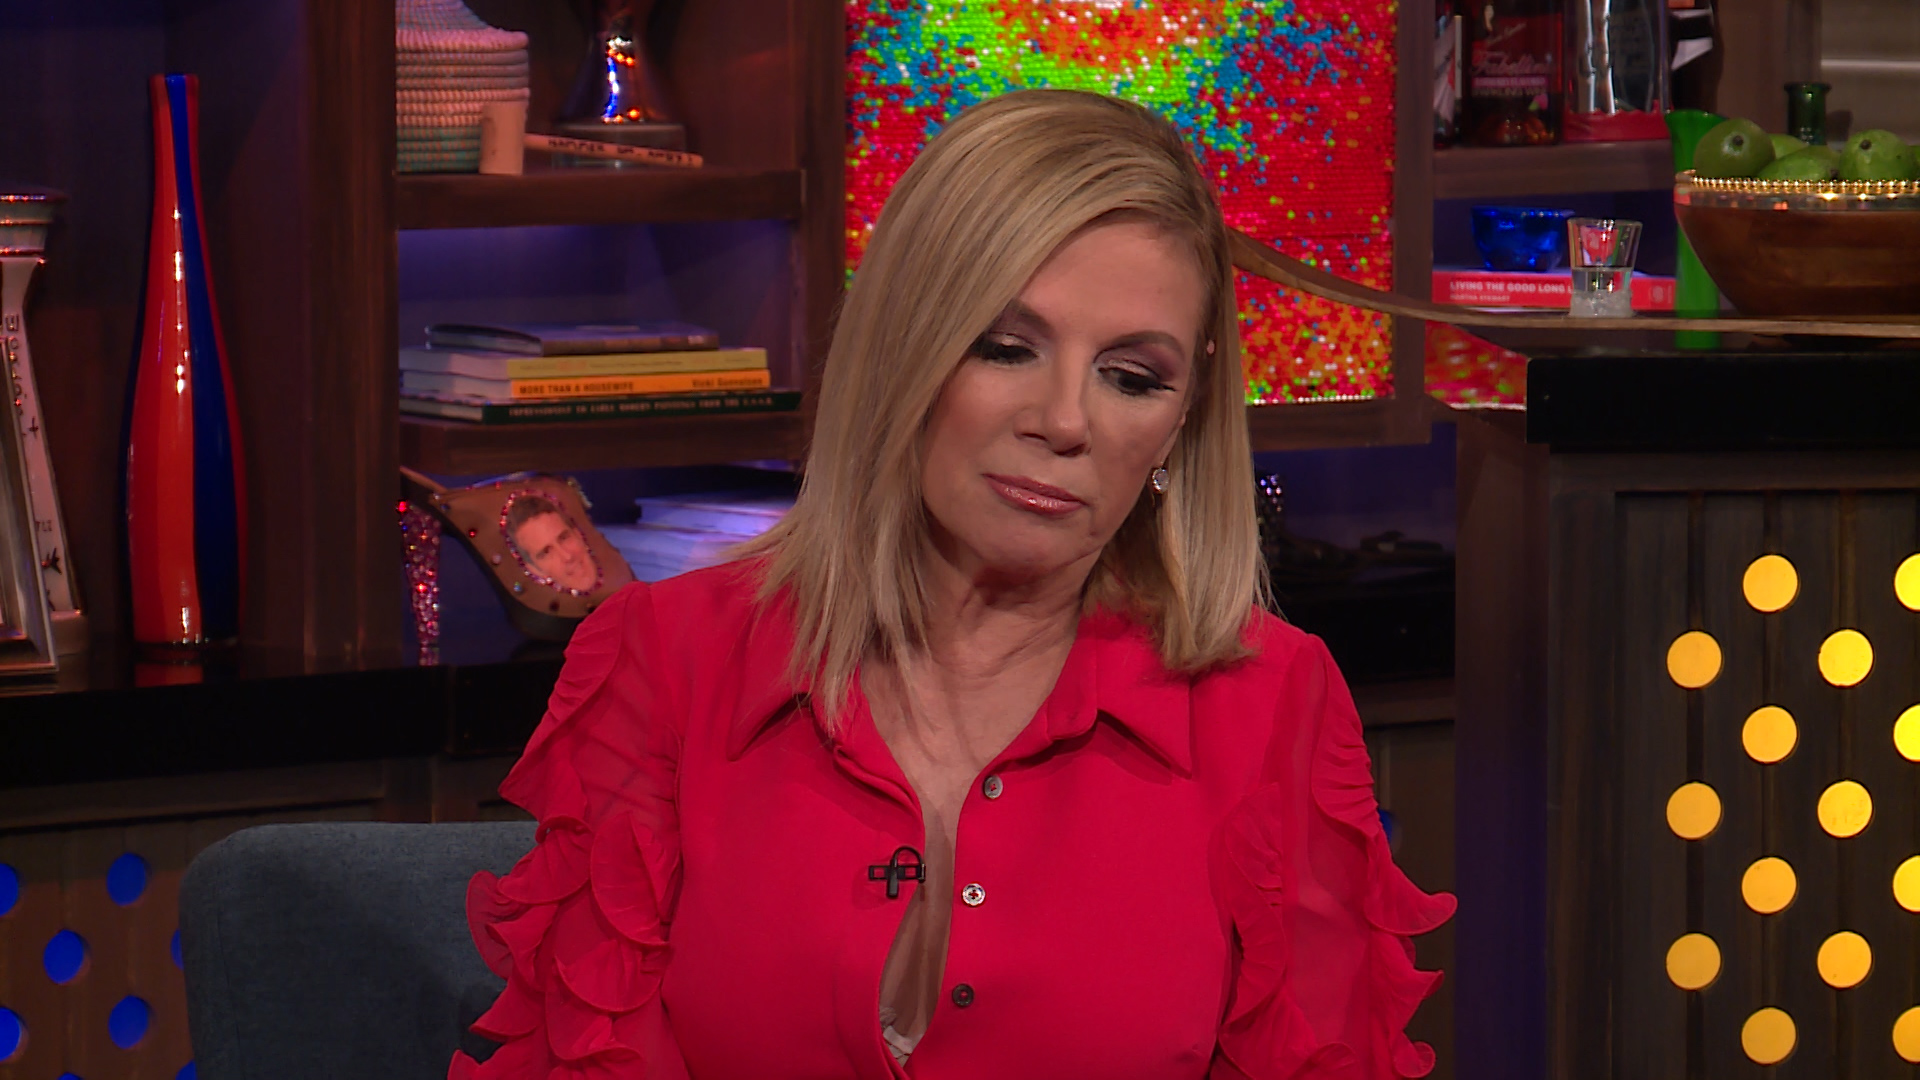 Ramona Reacts to Carole's Departure from #RHONY